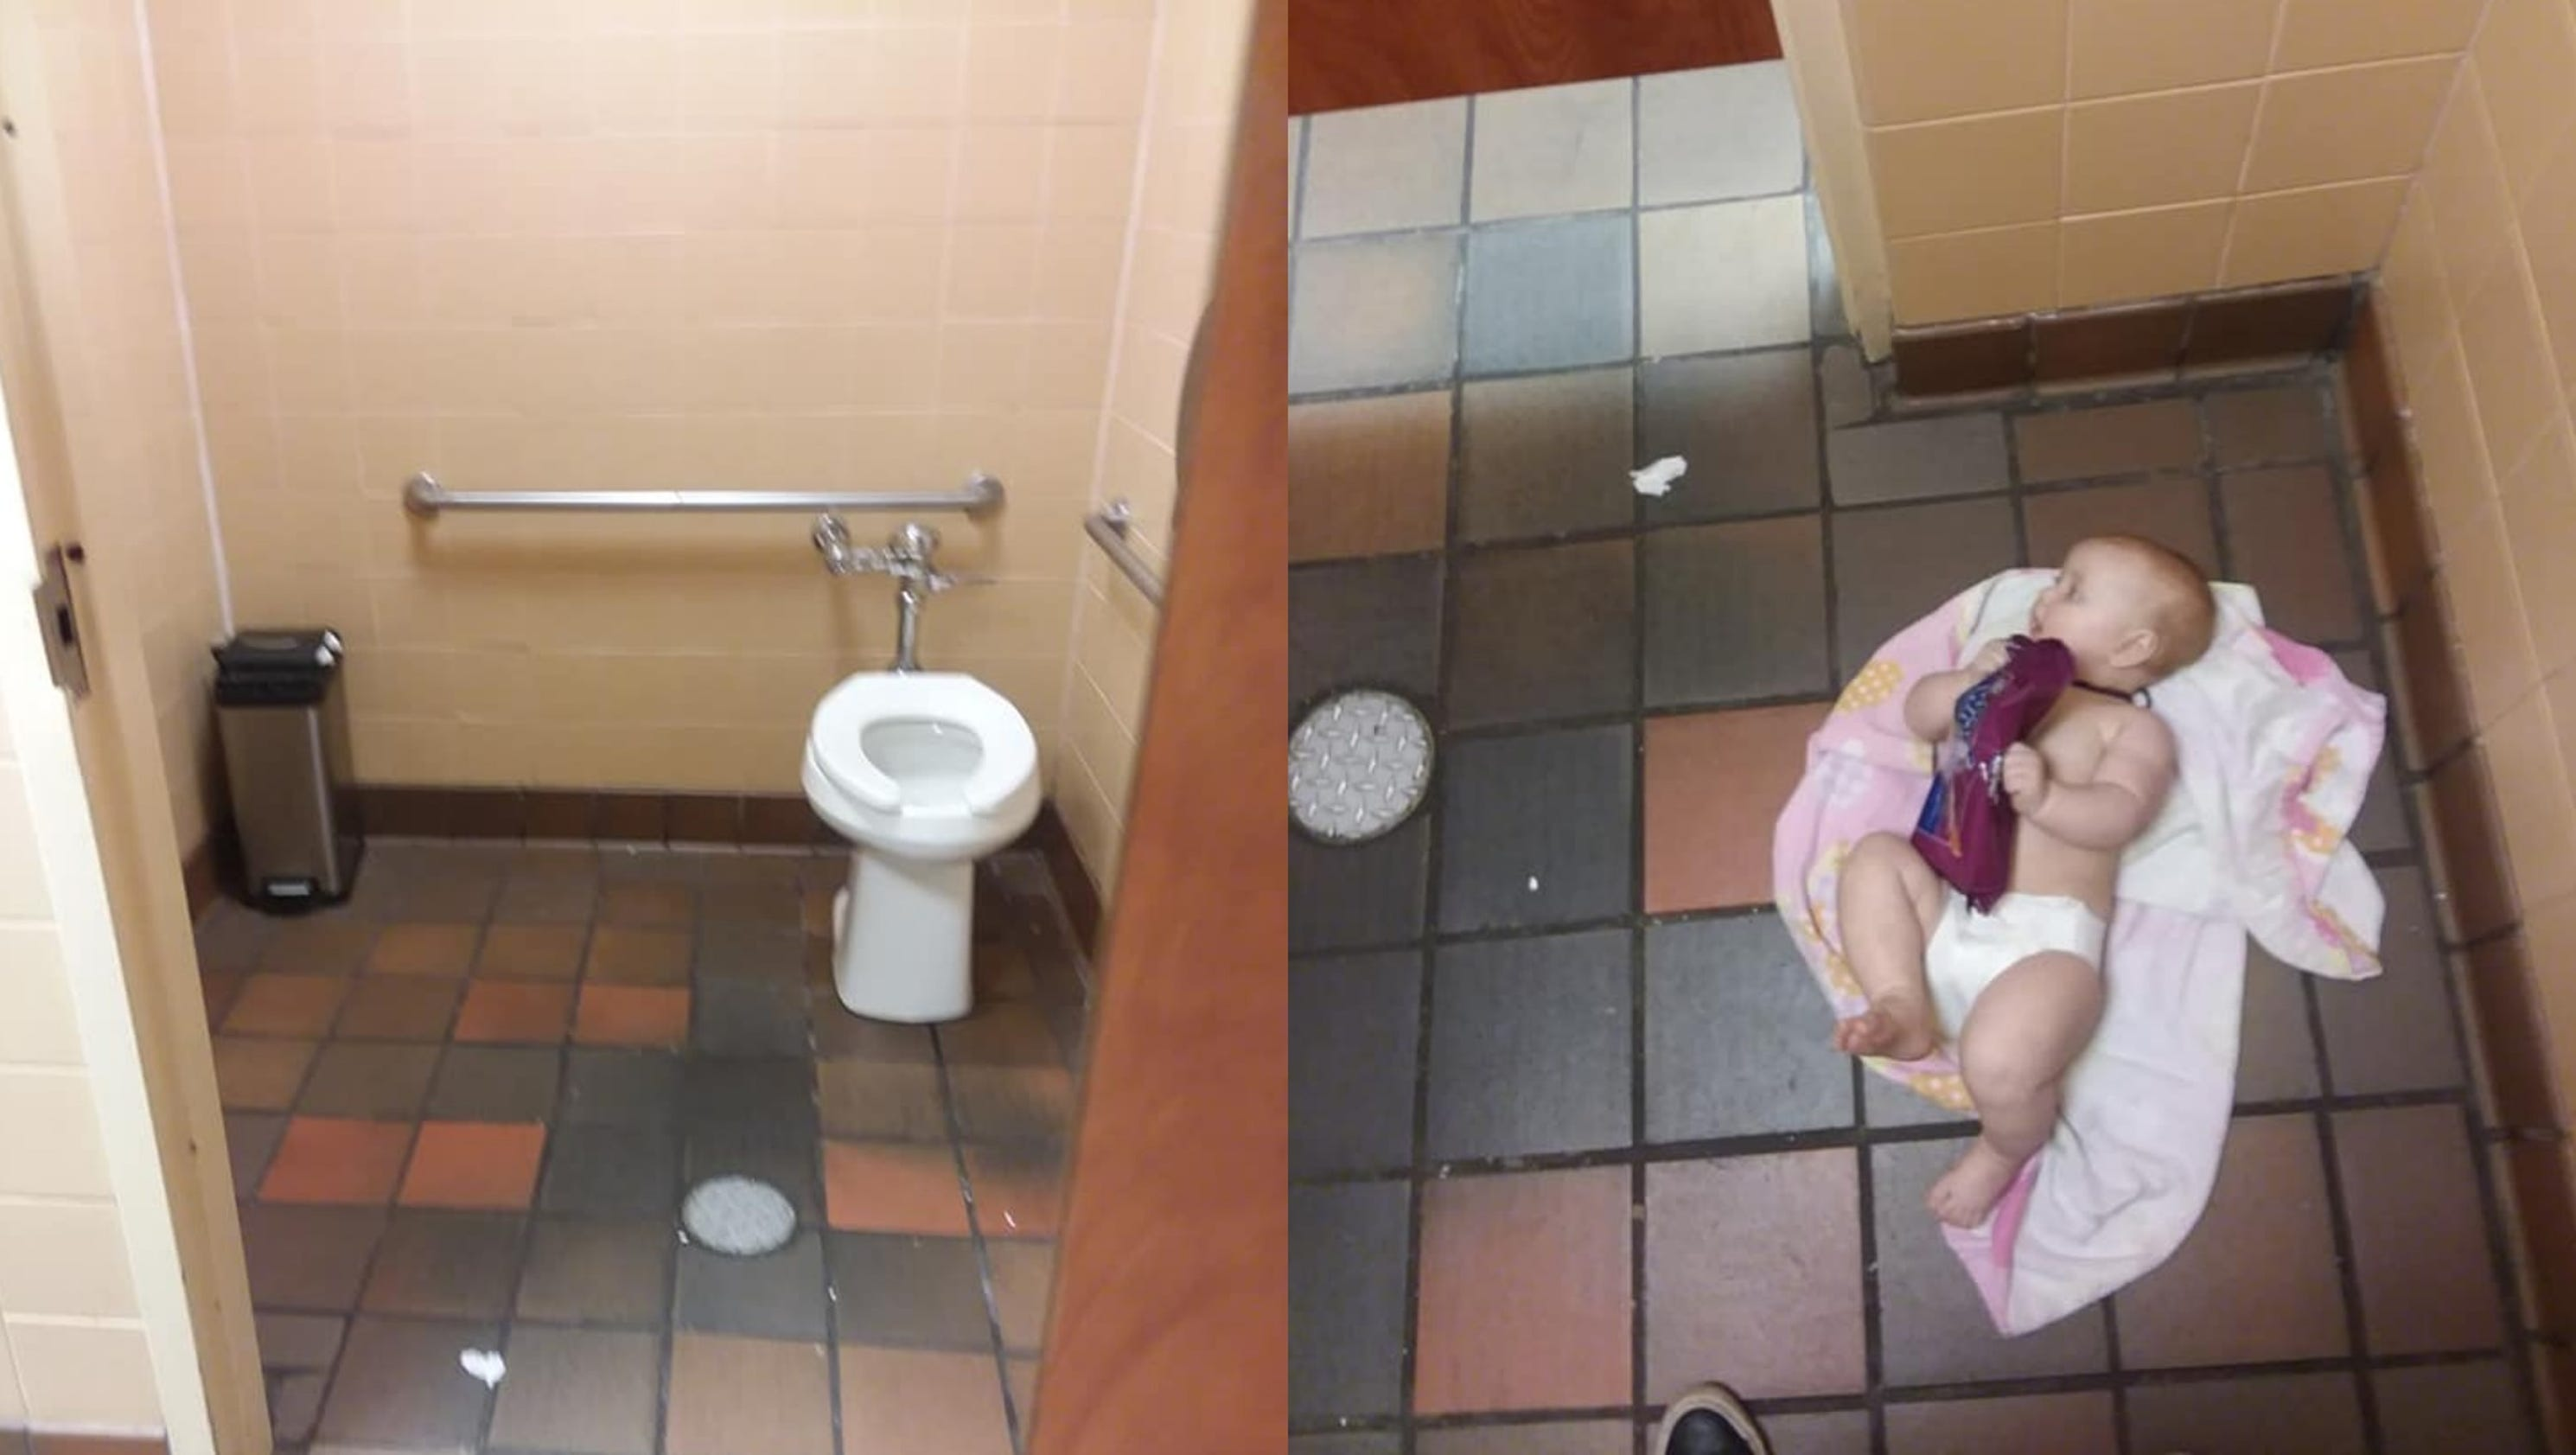 Dad 39 S Post About No Changing Station In Men 39 S Bathroom Goes Viral